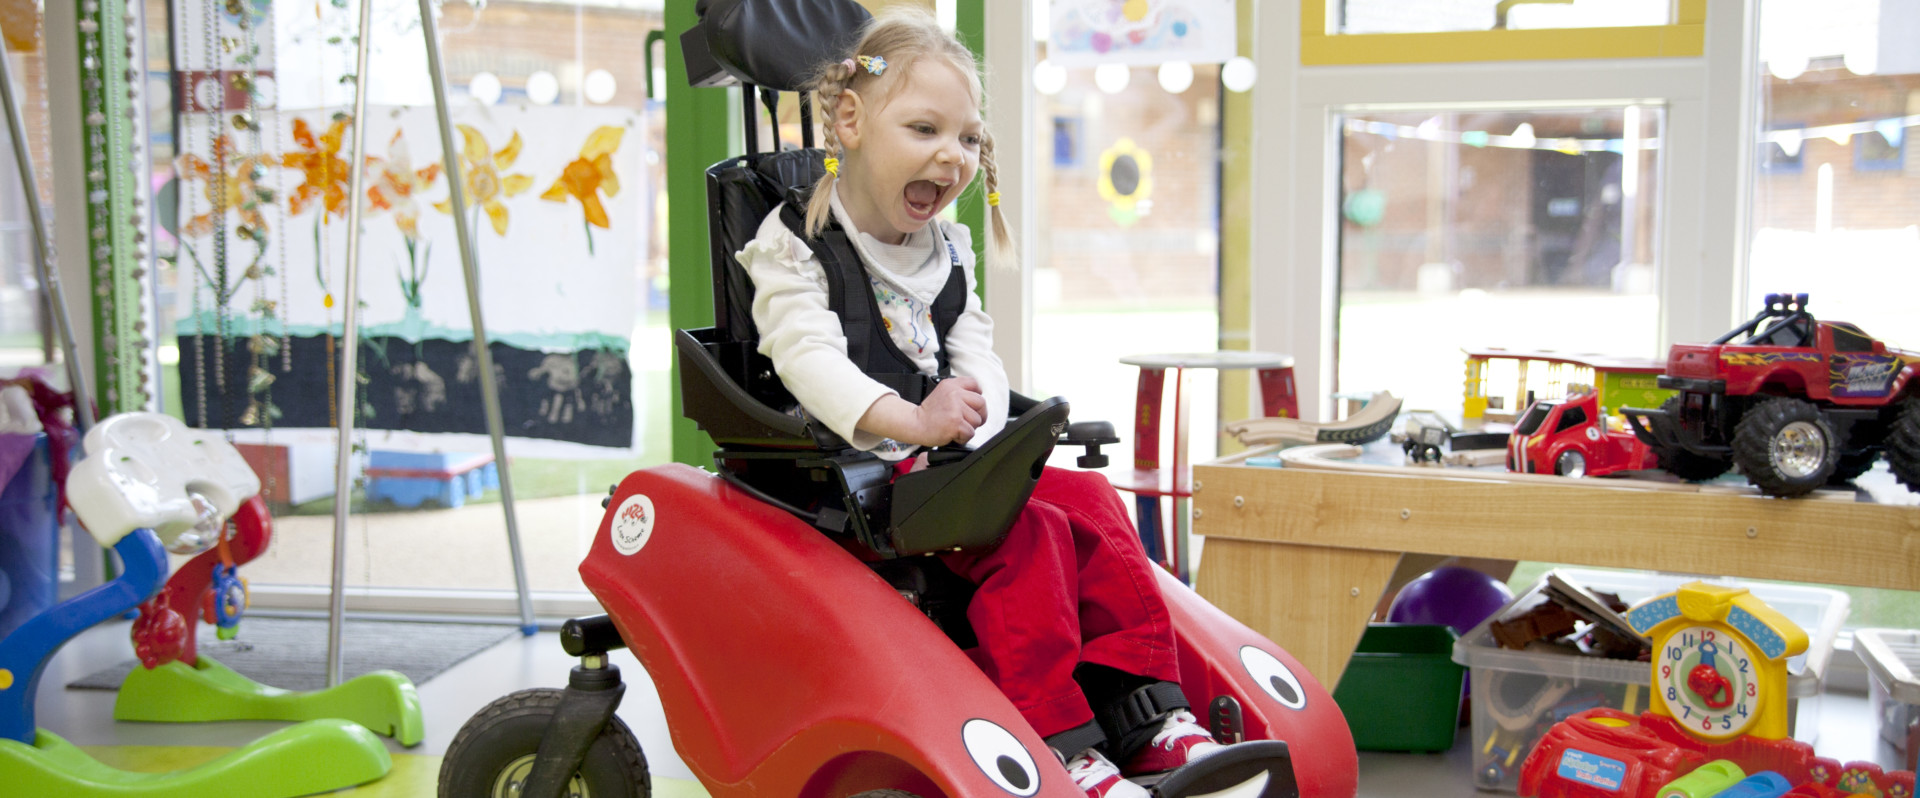 Little girl rides Wizzybug in playroom